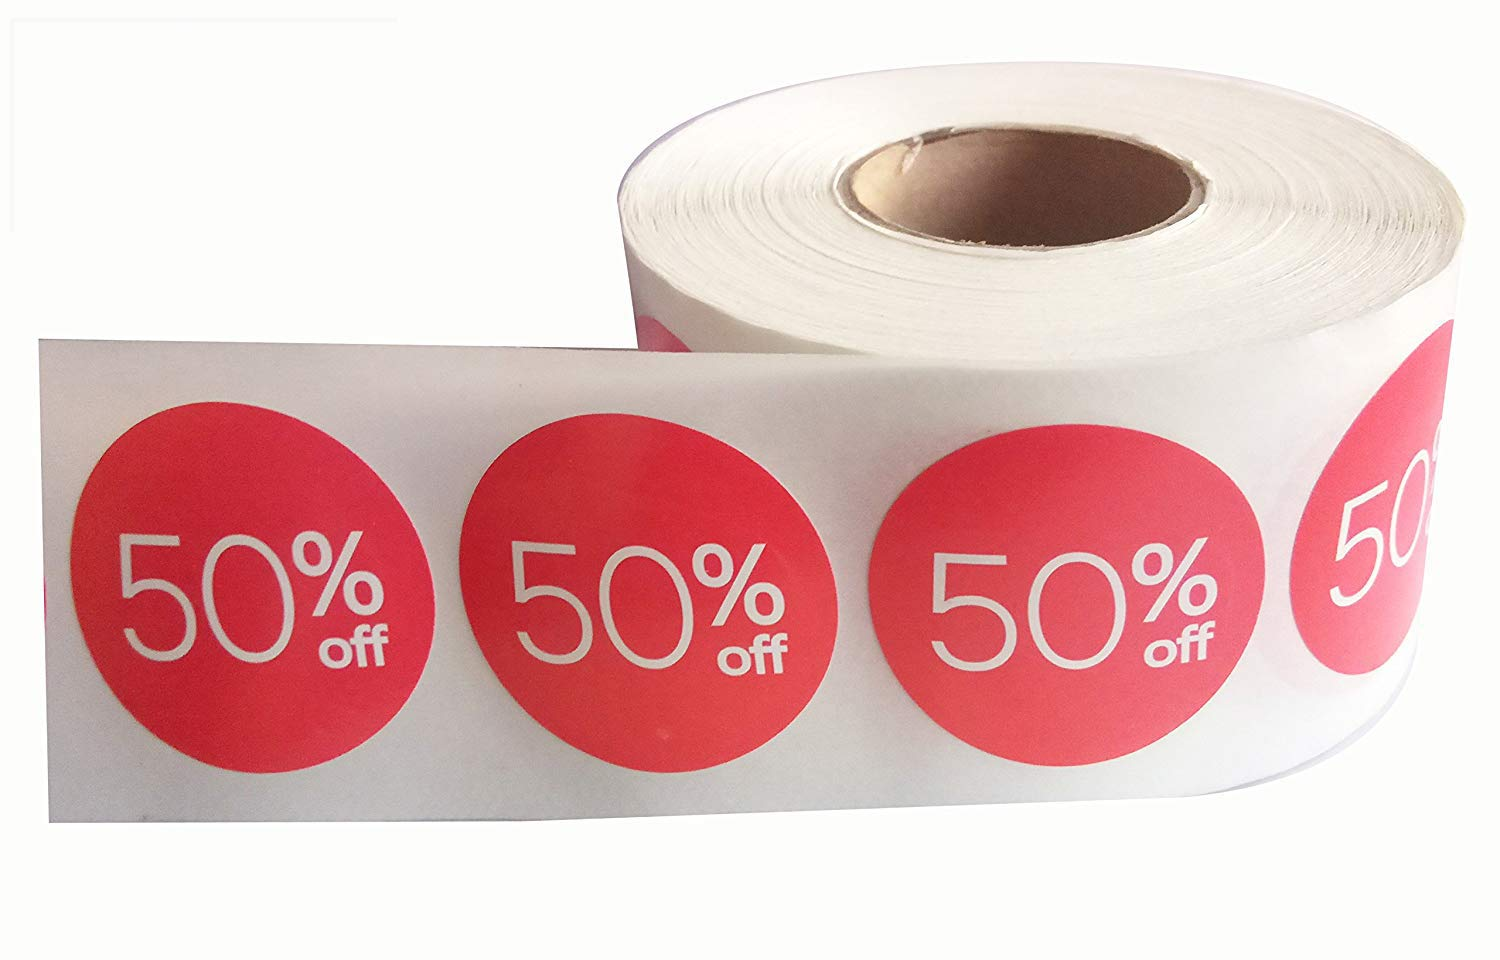 50% Off Sale Price Stickers Labels Percent Off Stickers for Retail Store Clearance Promotion Discount Deals Circle Pricemarker Half Off Labels Stickers roll (1.5 inch, Red)